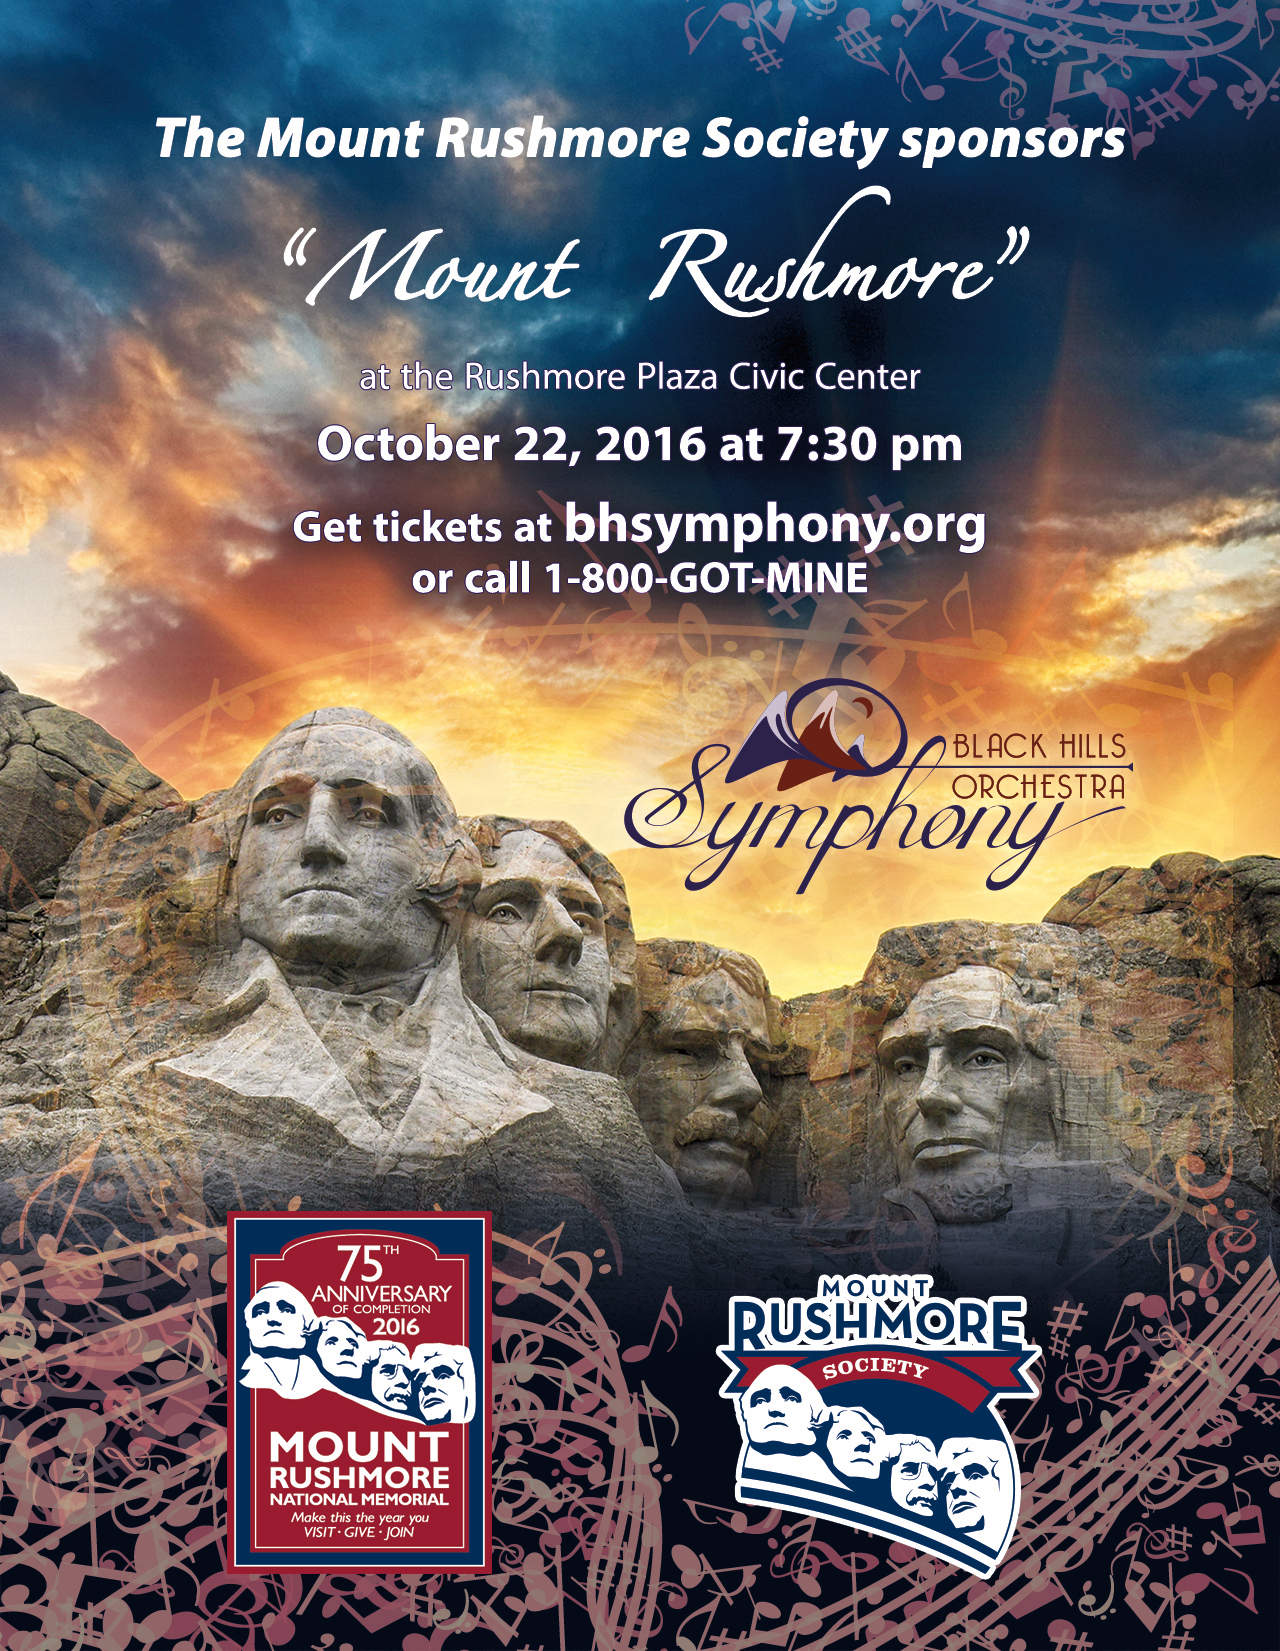 Flyer for Mount Rushmore 75th Anniversary Symphonic Celebration